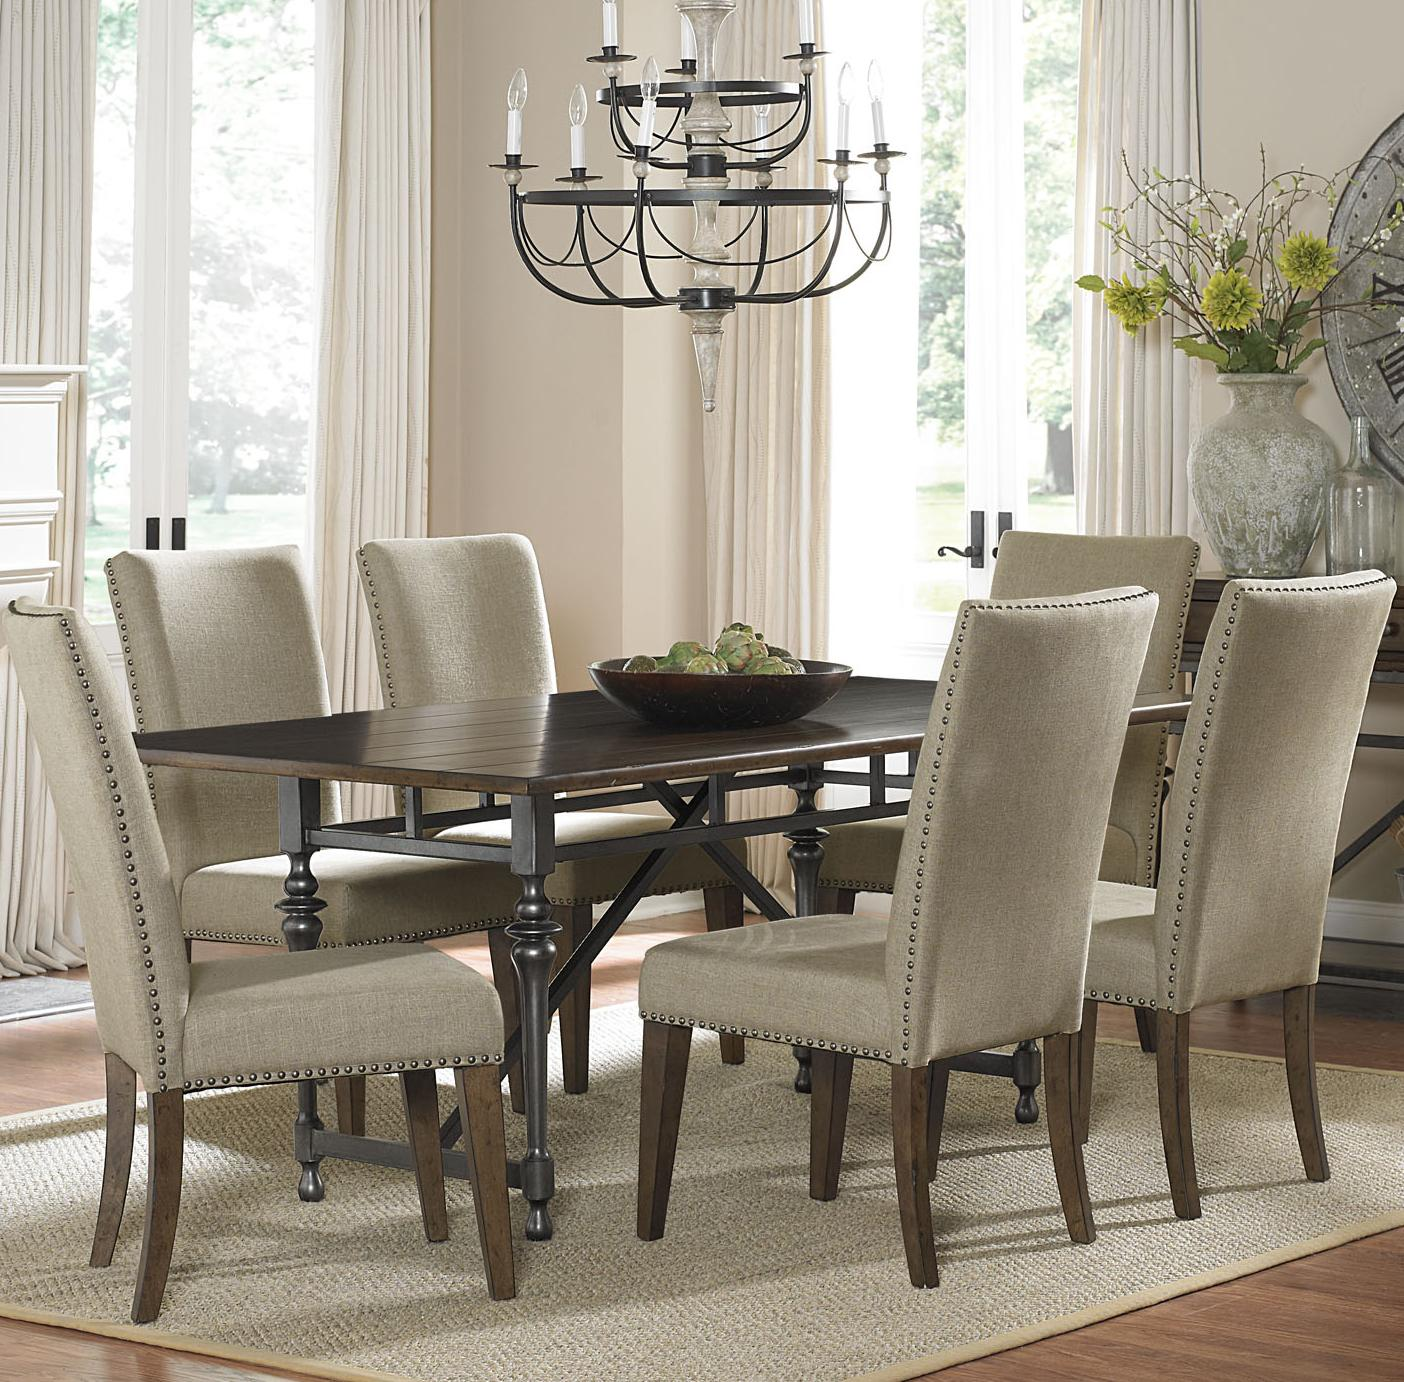 Liberty Furniture Ivy Park 7 Piece Dining Set